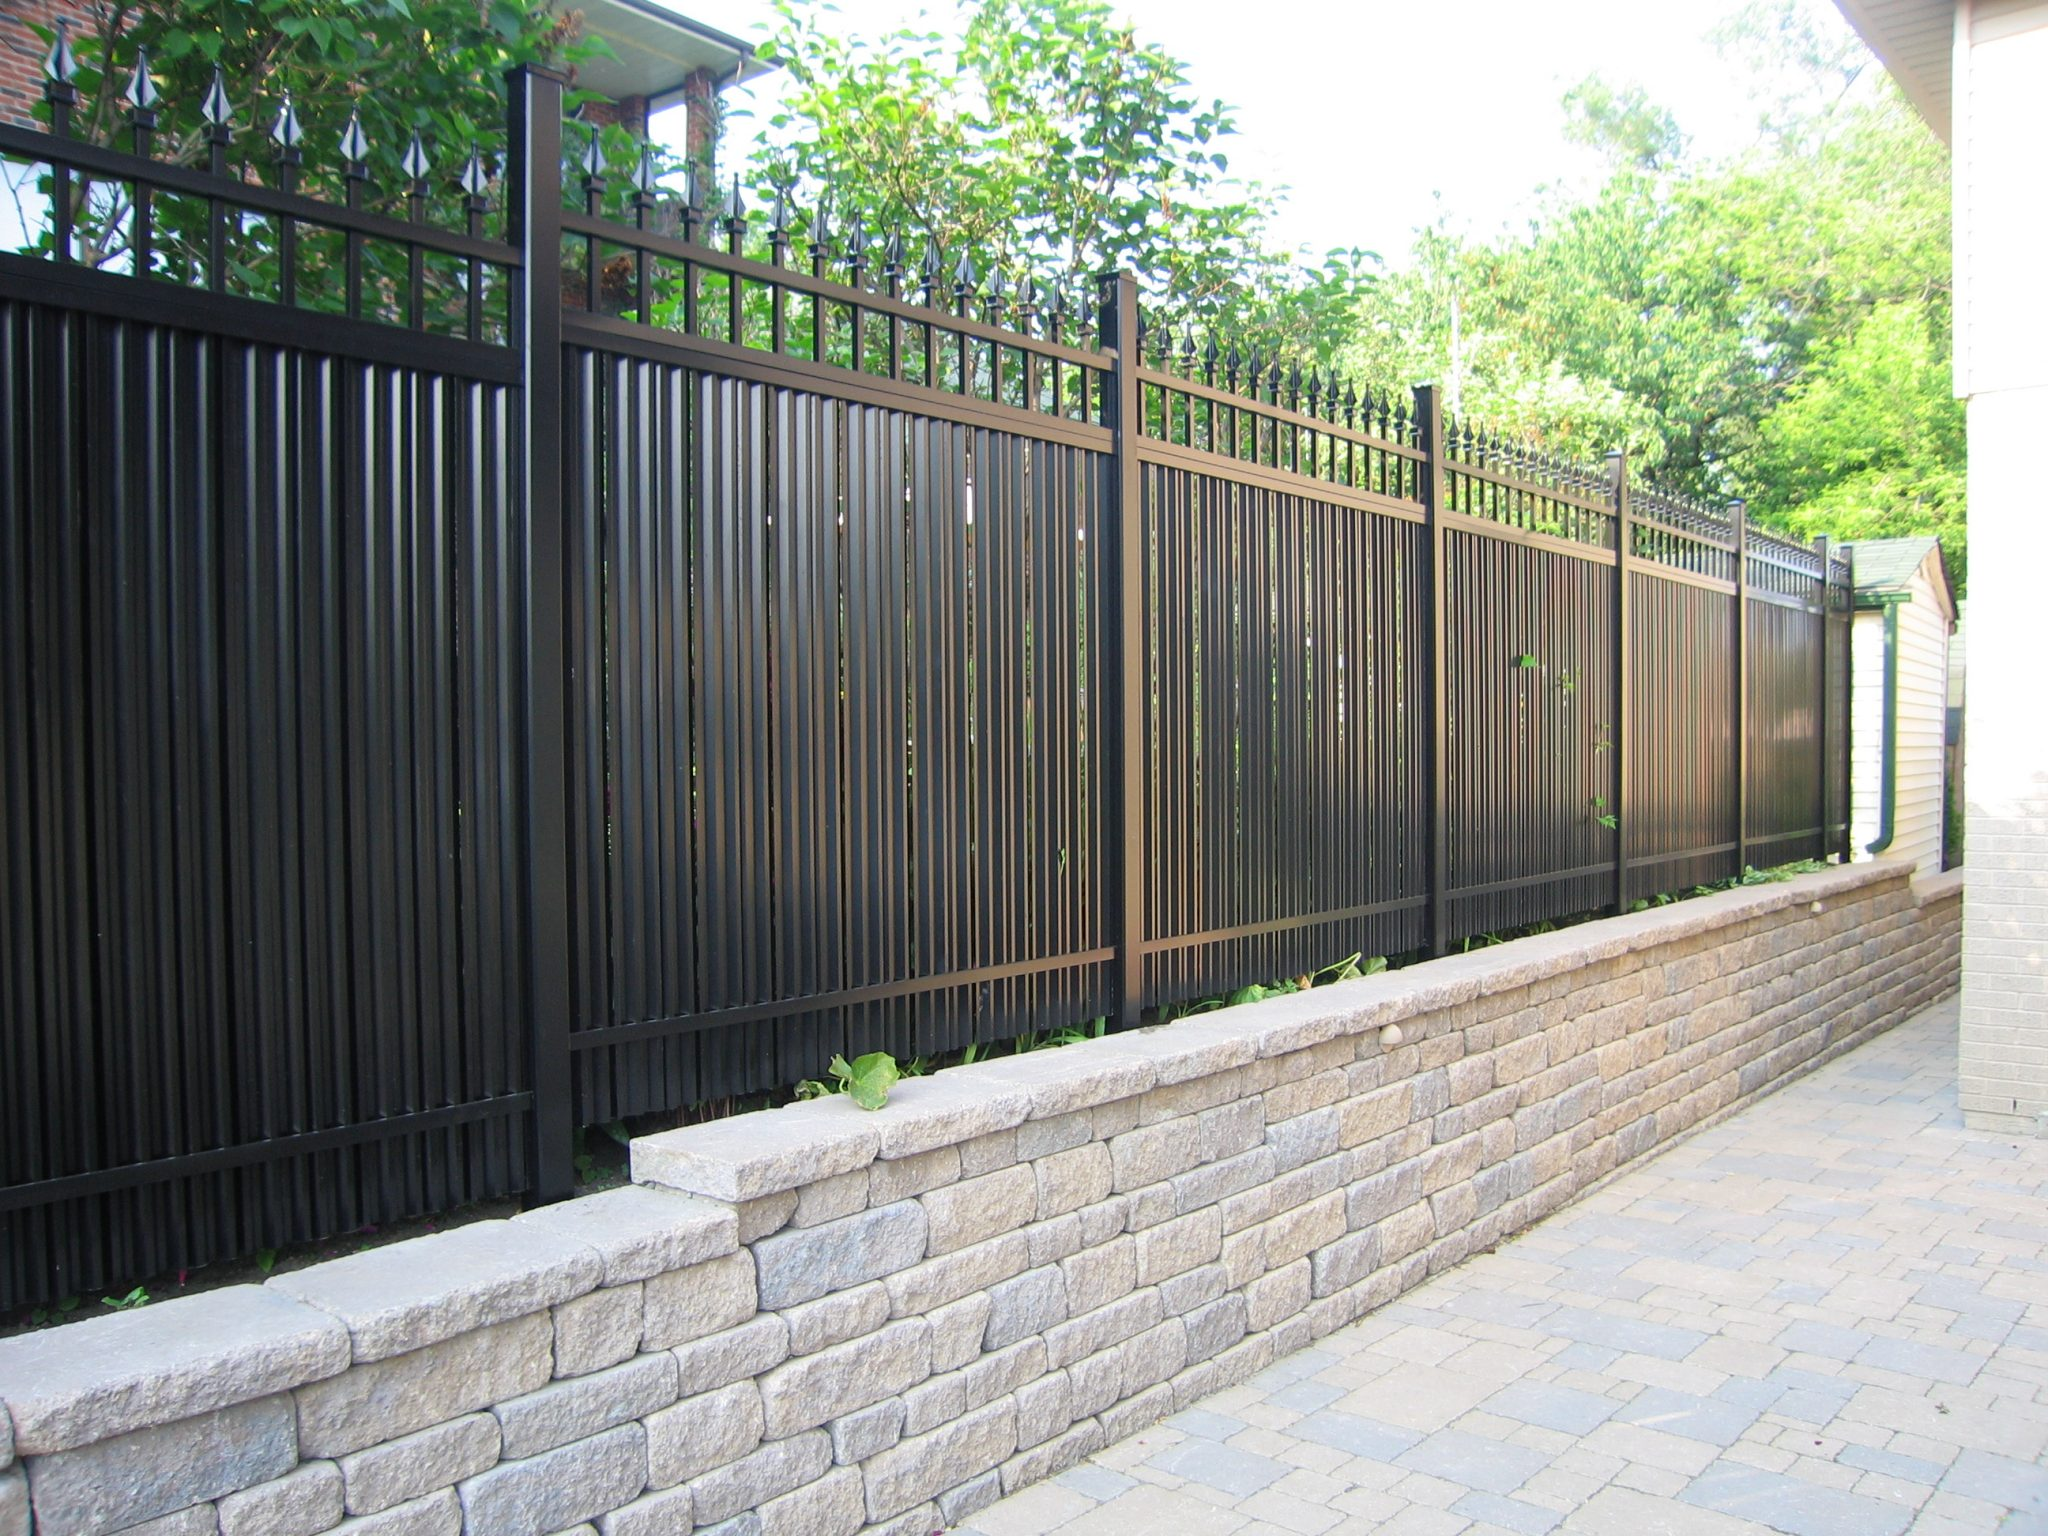 Picketed fence over wall